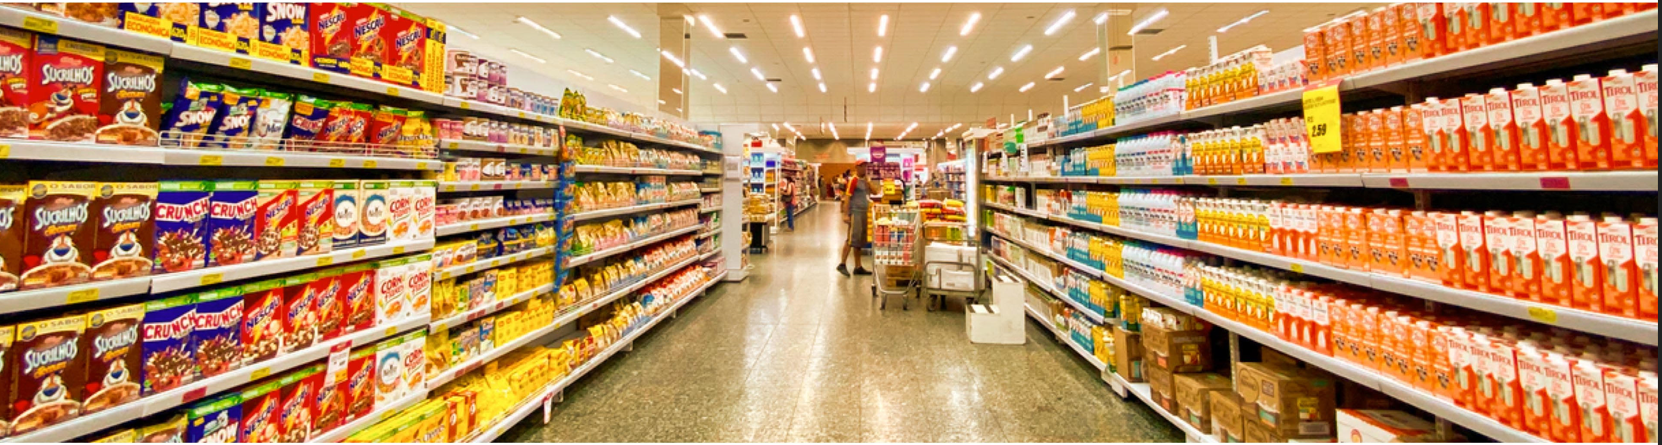 Distribution Lessons for FMCG & DTC Brands